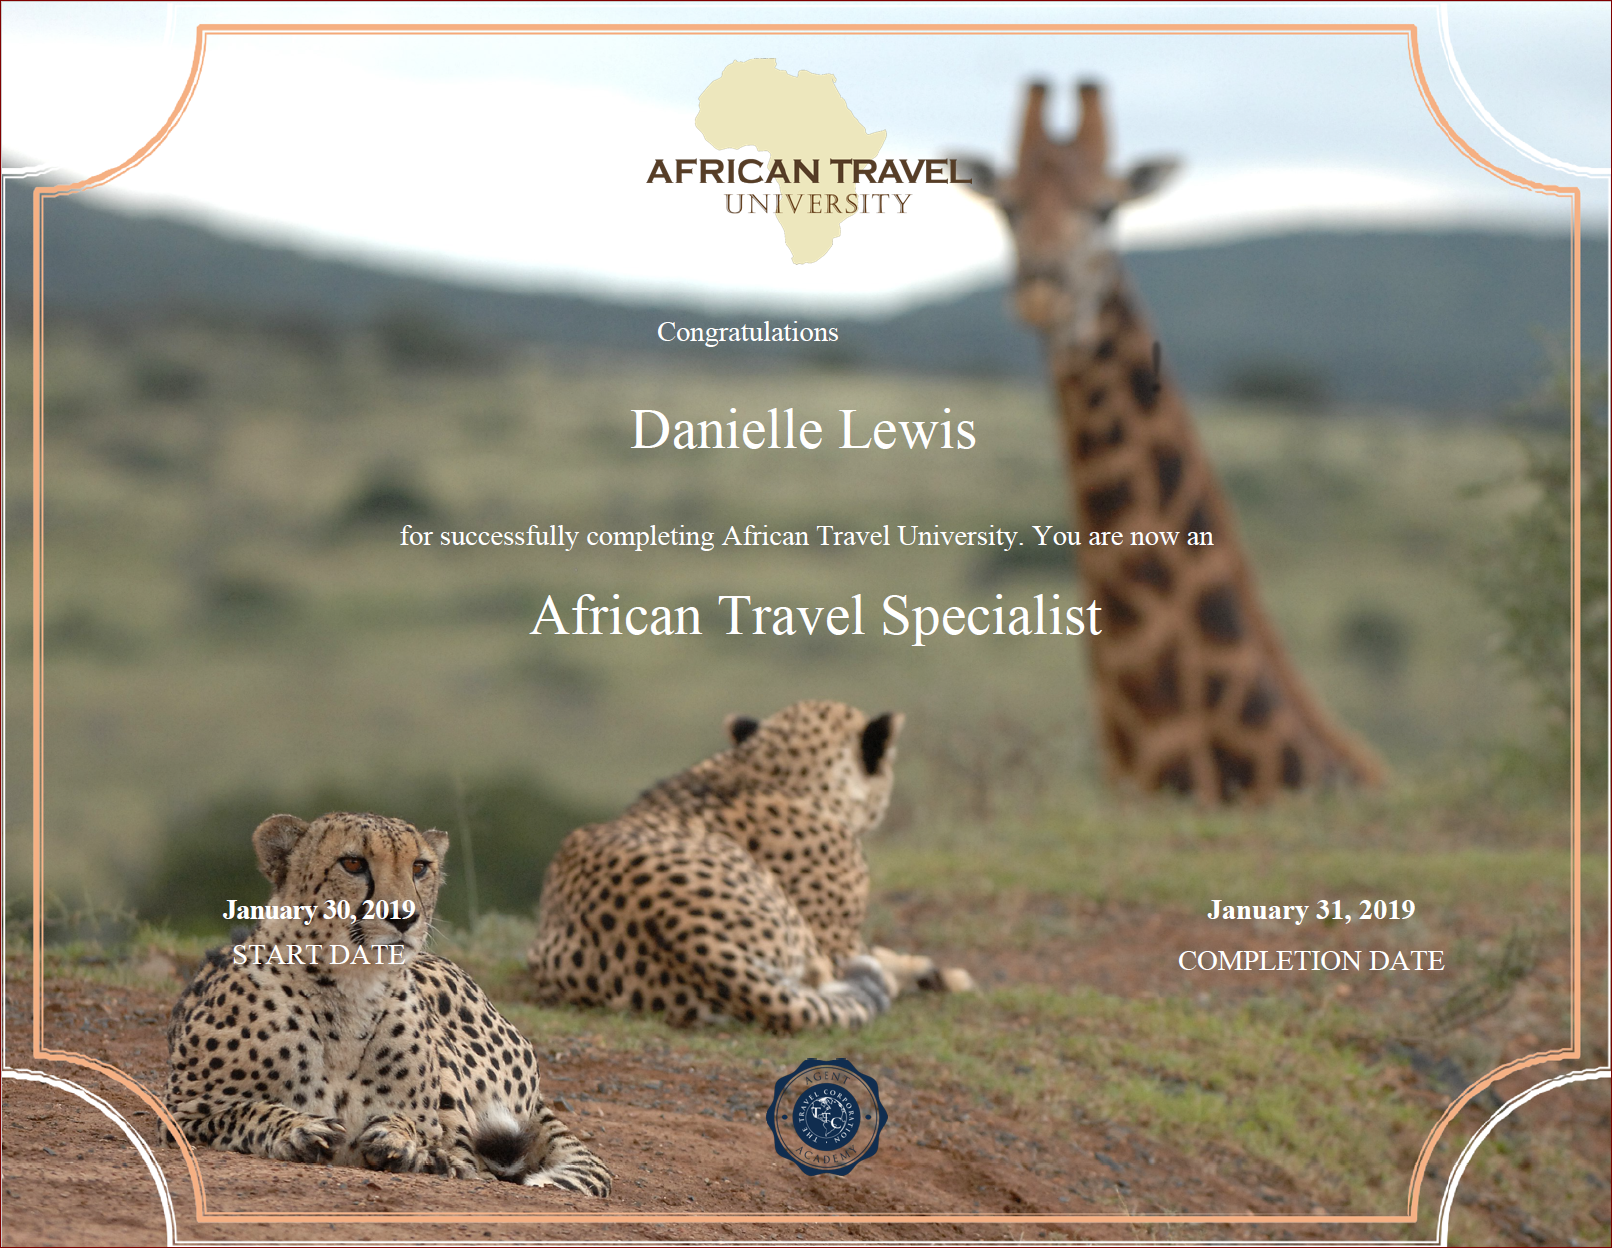 SelfishMe Travel - African Travel Specialist